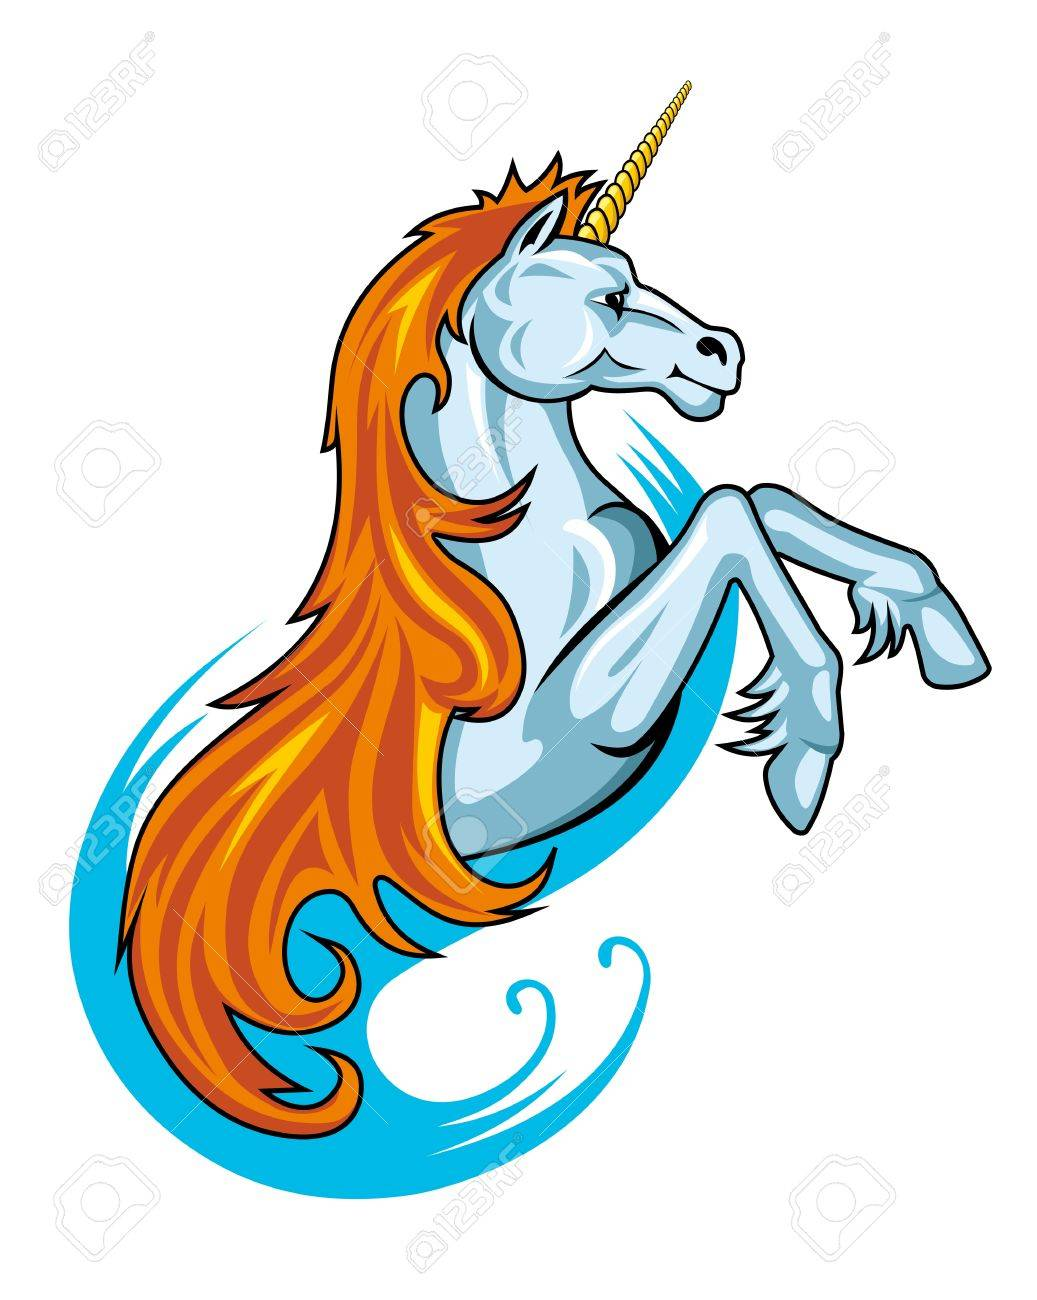 Fantasy unicorn horse in cartoon style for tattoo design Stock Vector - 10692909